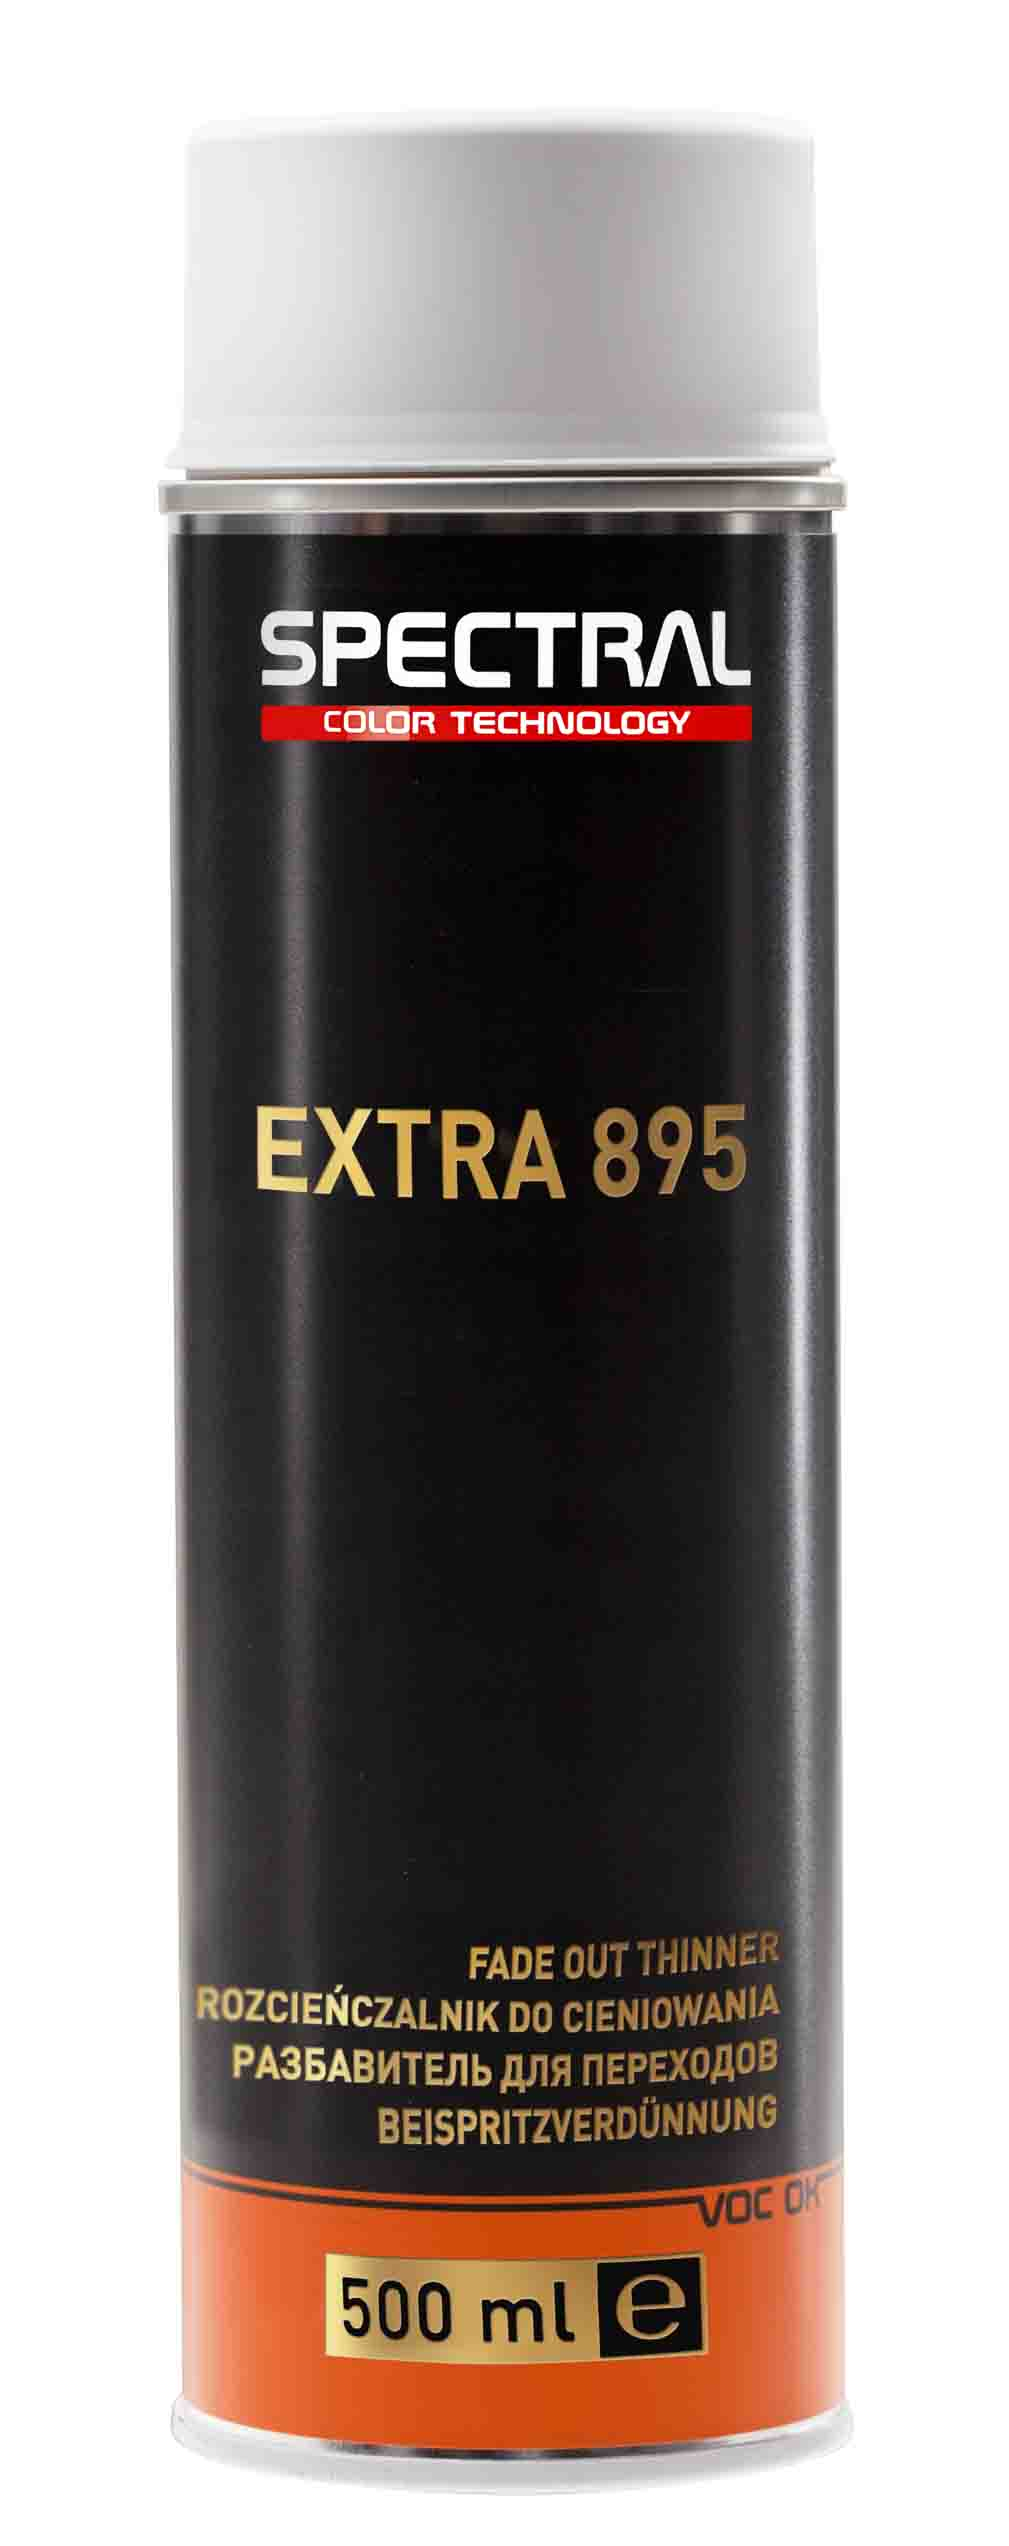 Spectral Extra 895 Fade Out Thinner Car Colour Services